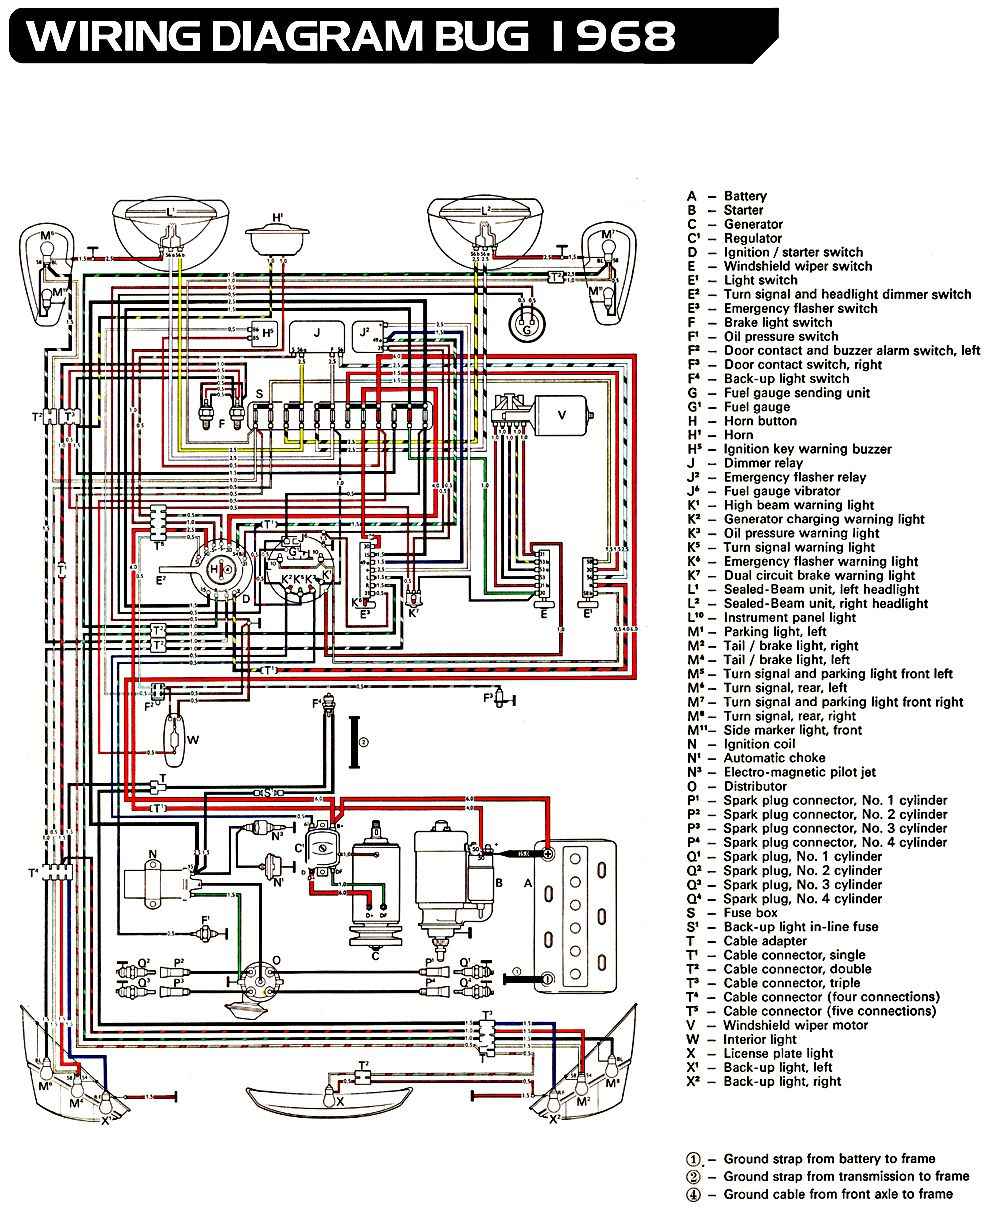 medium resolution of 1969 vw bug fuse diagram wiring diagram for you1969 vw wiring diagram wiring diagram yes 1969